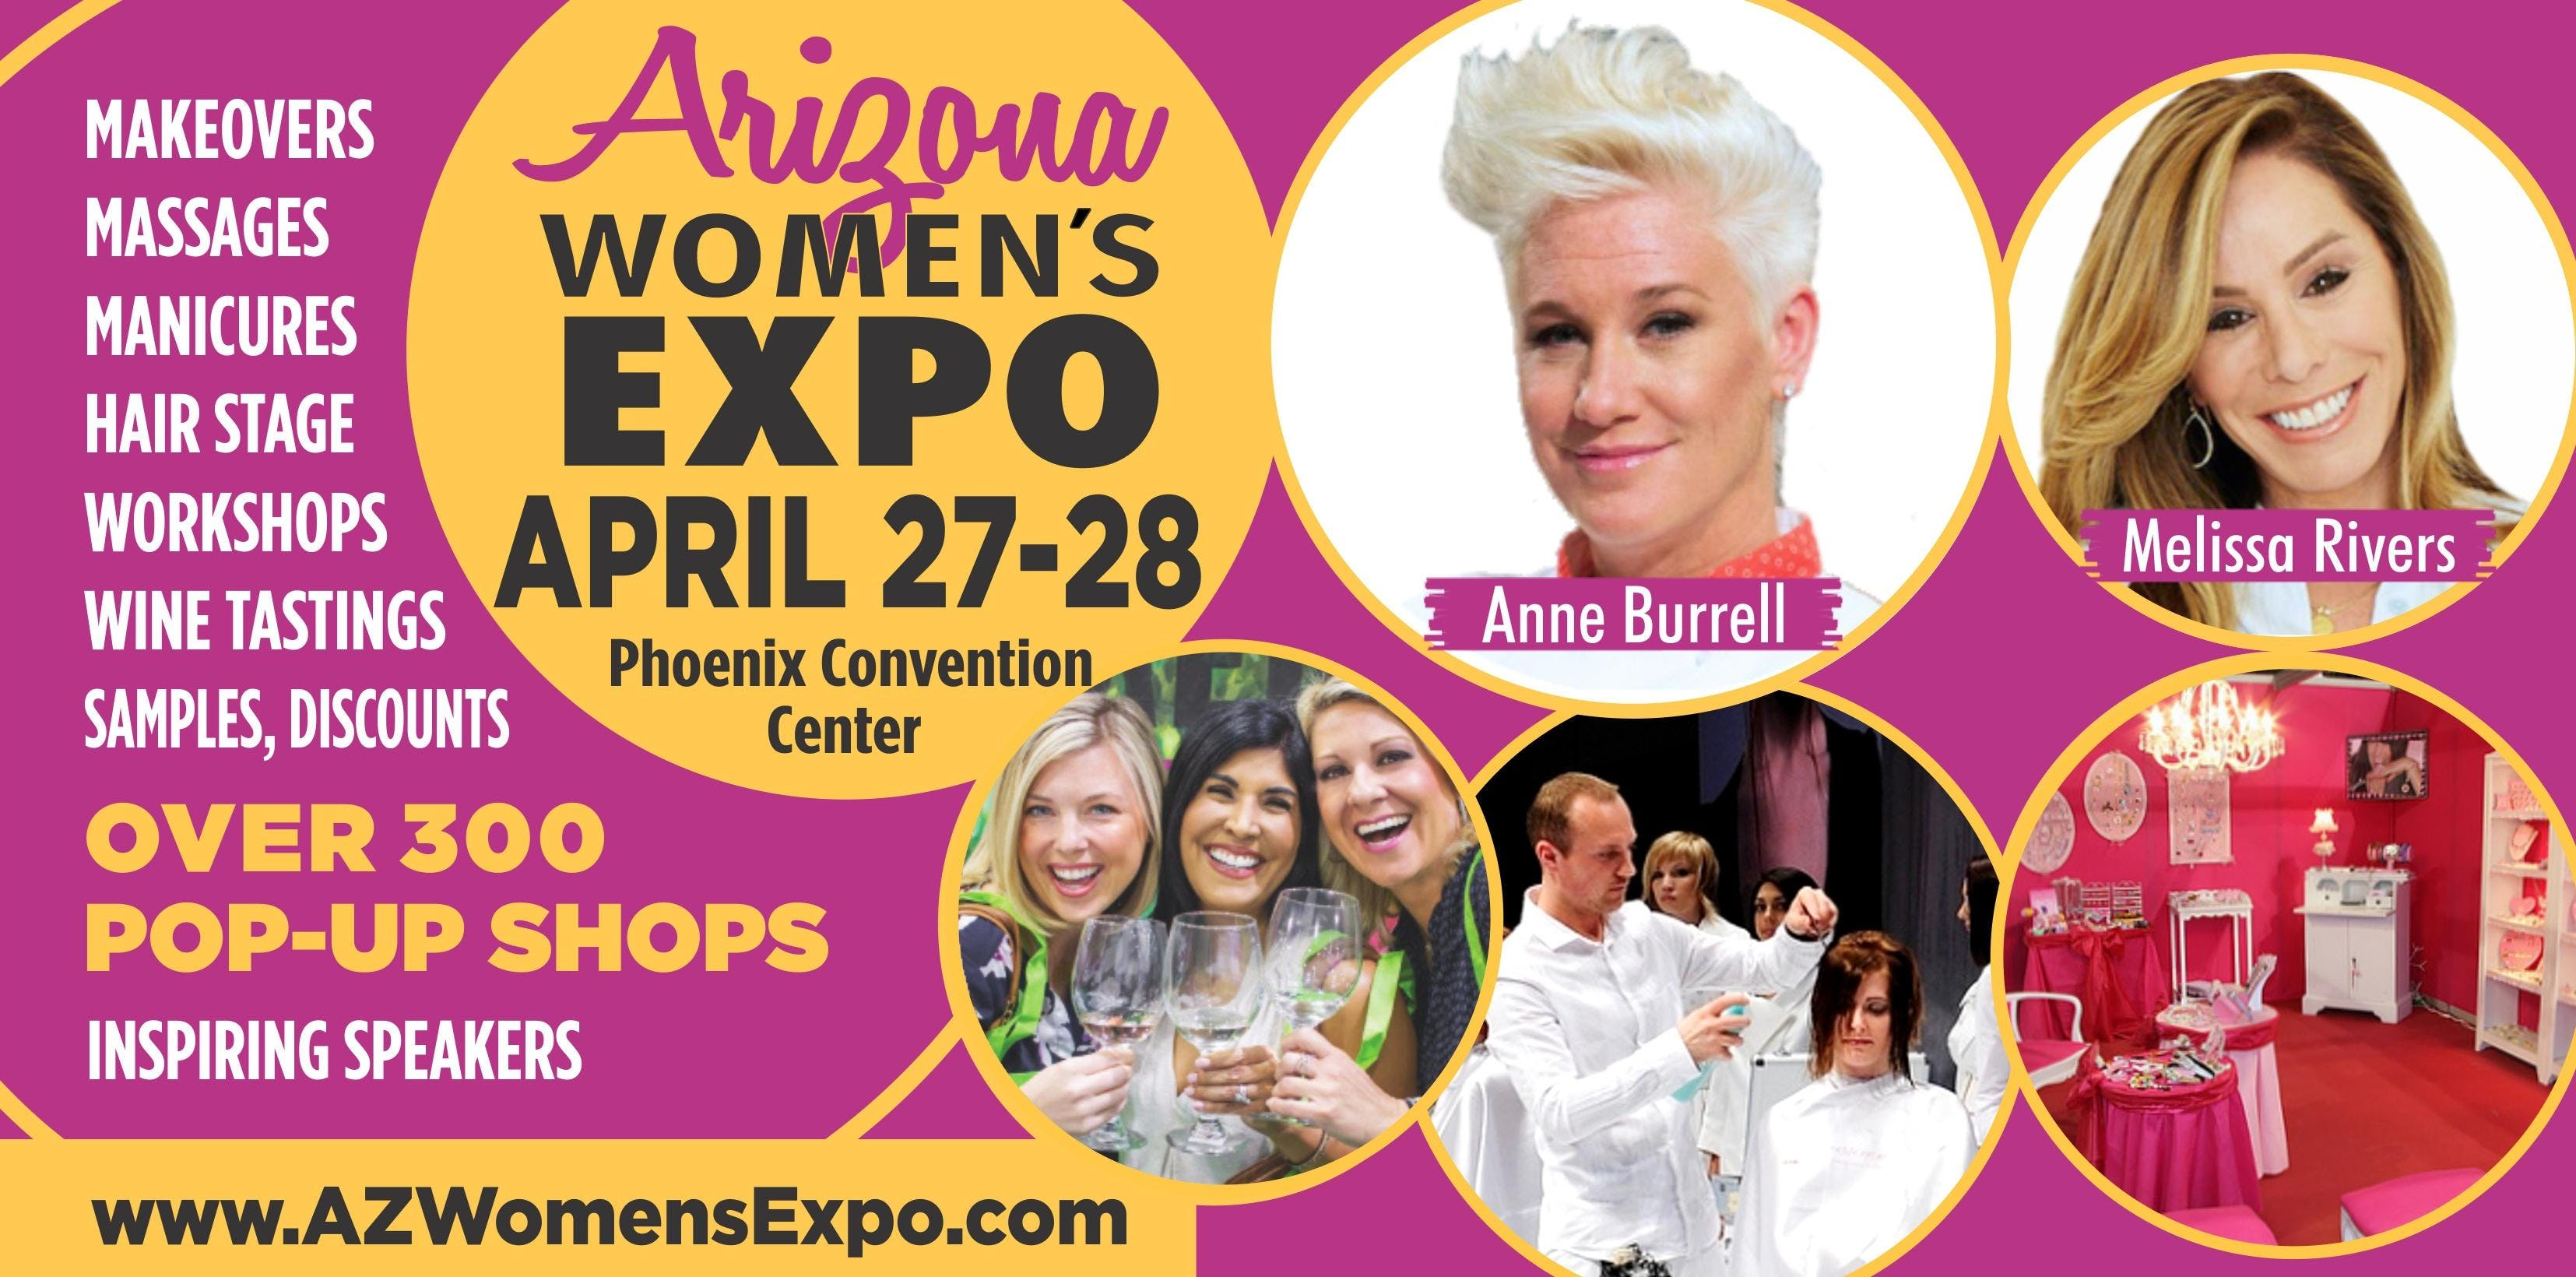 Arizona's Ultimate Women's Expo April 27-28, 2019